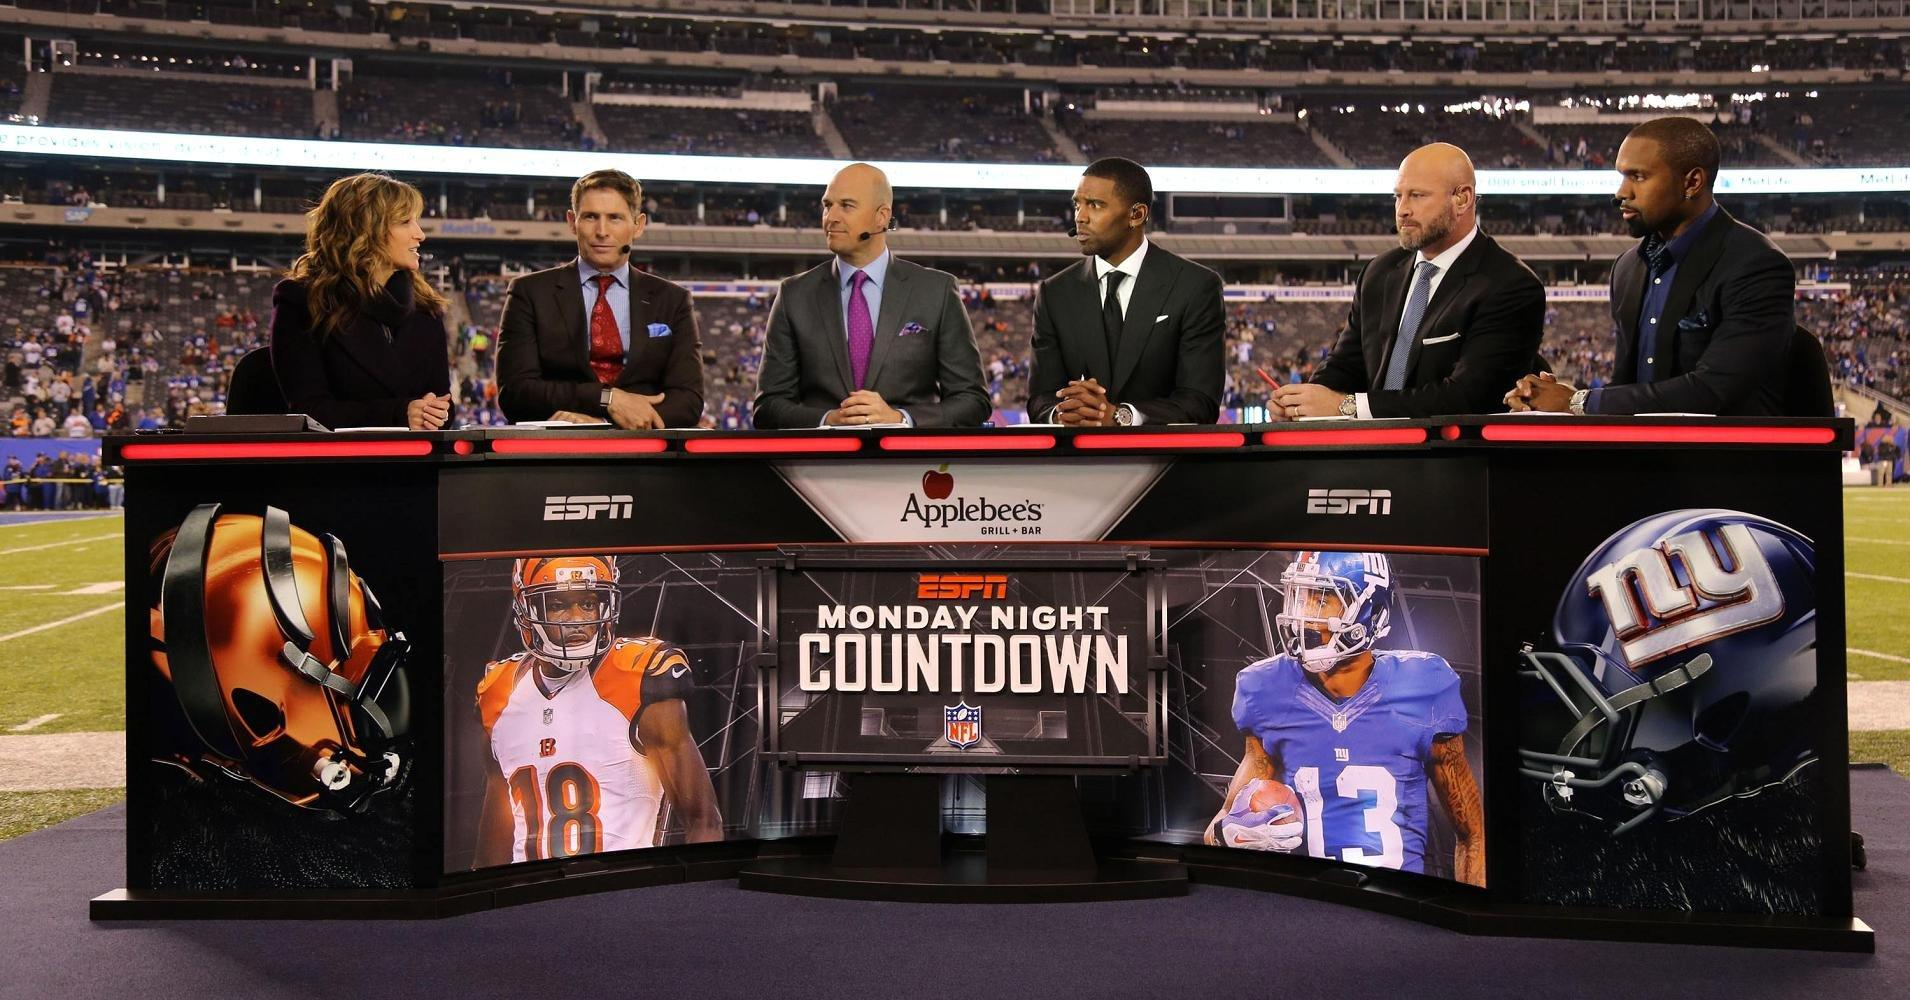 ESPN's ratings are suffering, but they're far from the only ones. Here's who else is on the wane